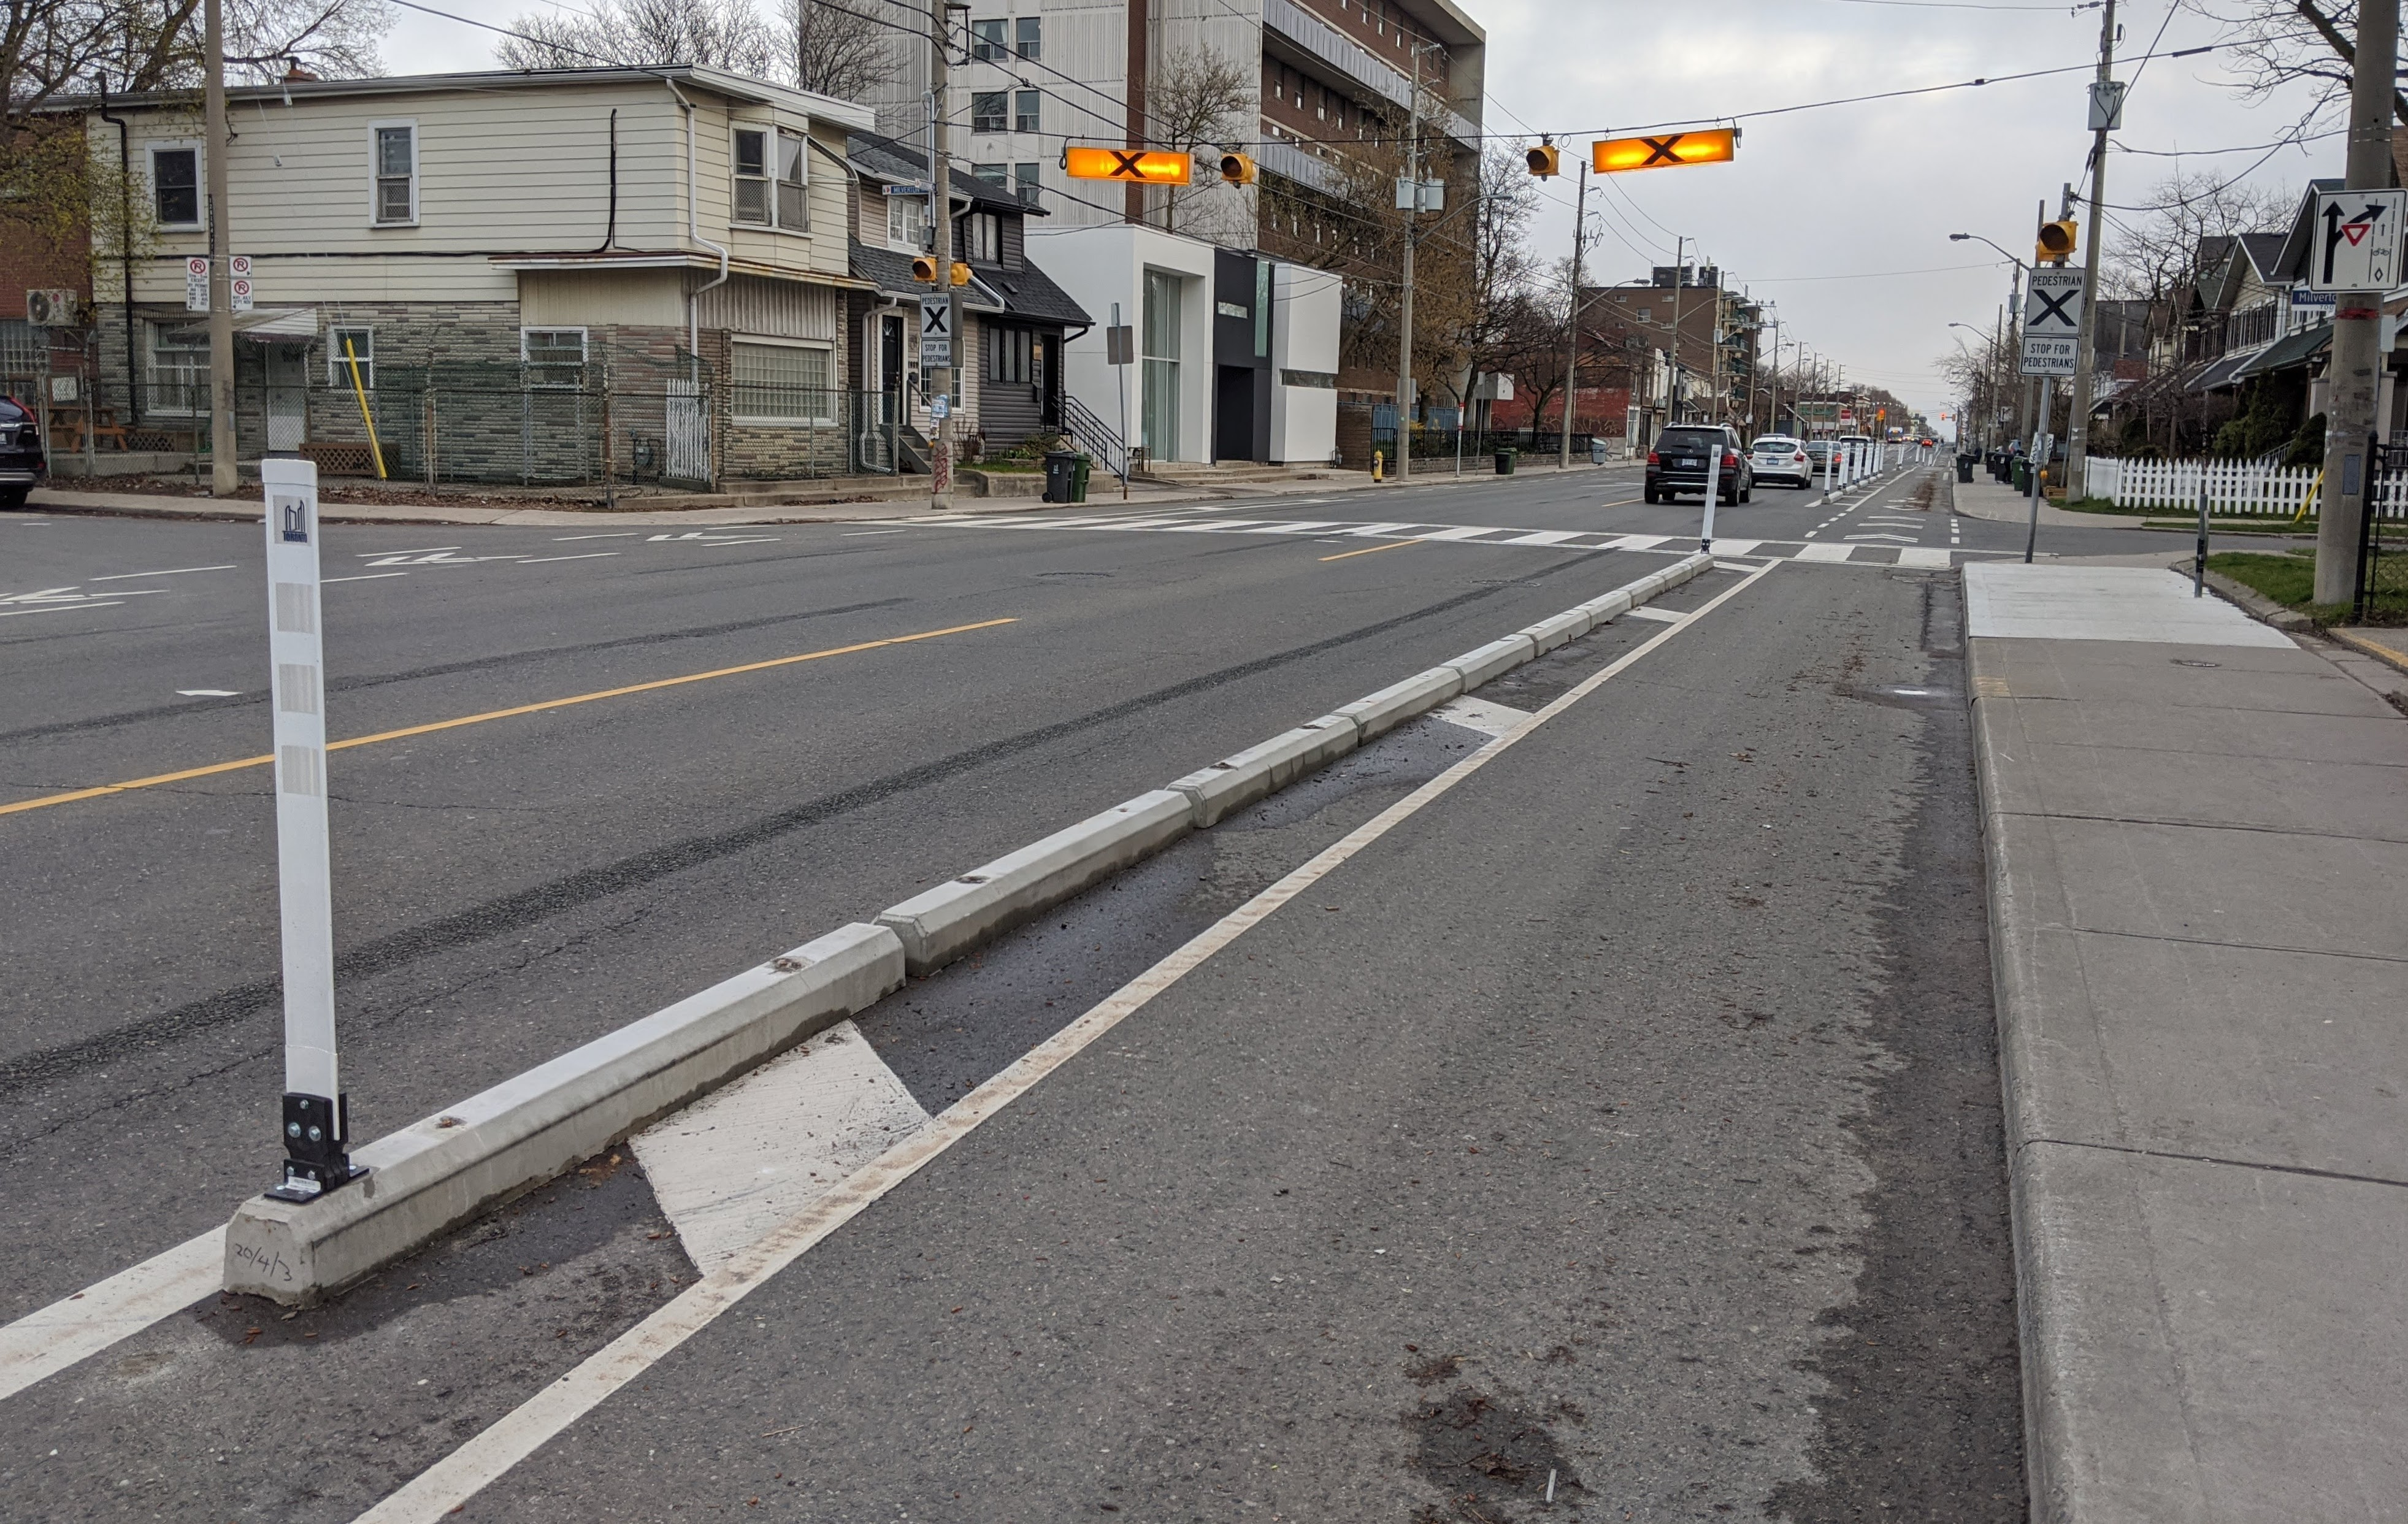 A curb separated bike lane stretches across the street